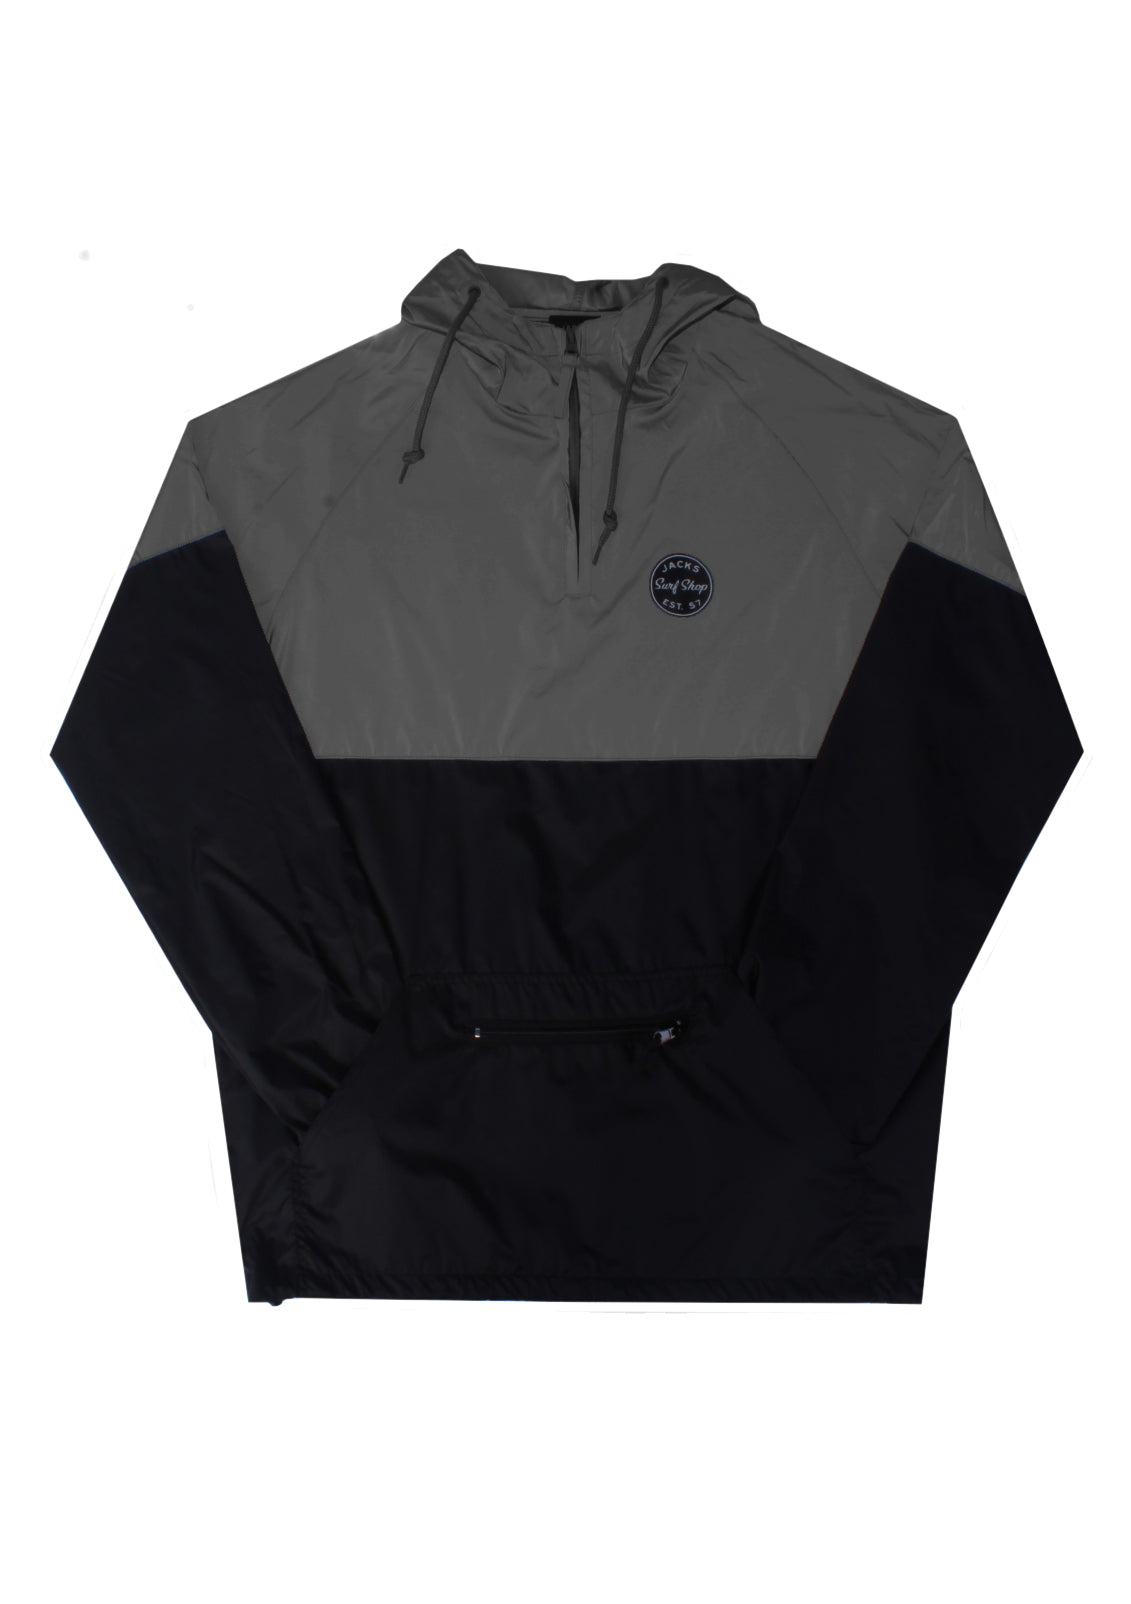 Jacks Surfboards Nicks Jacket